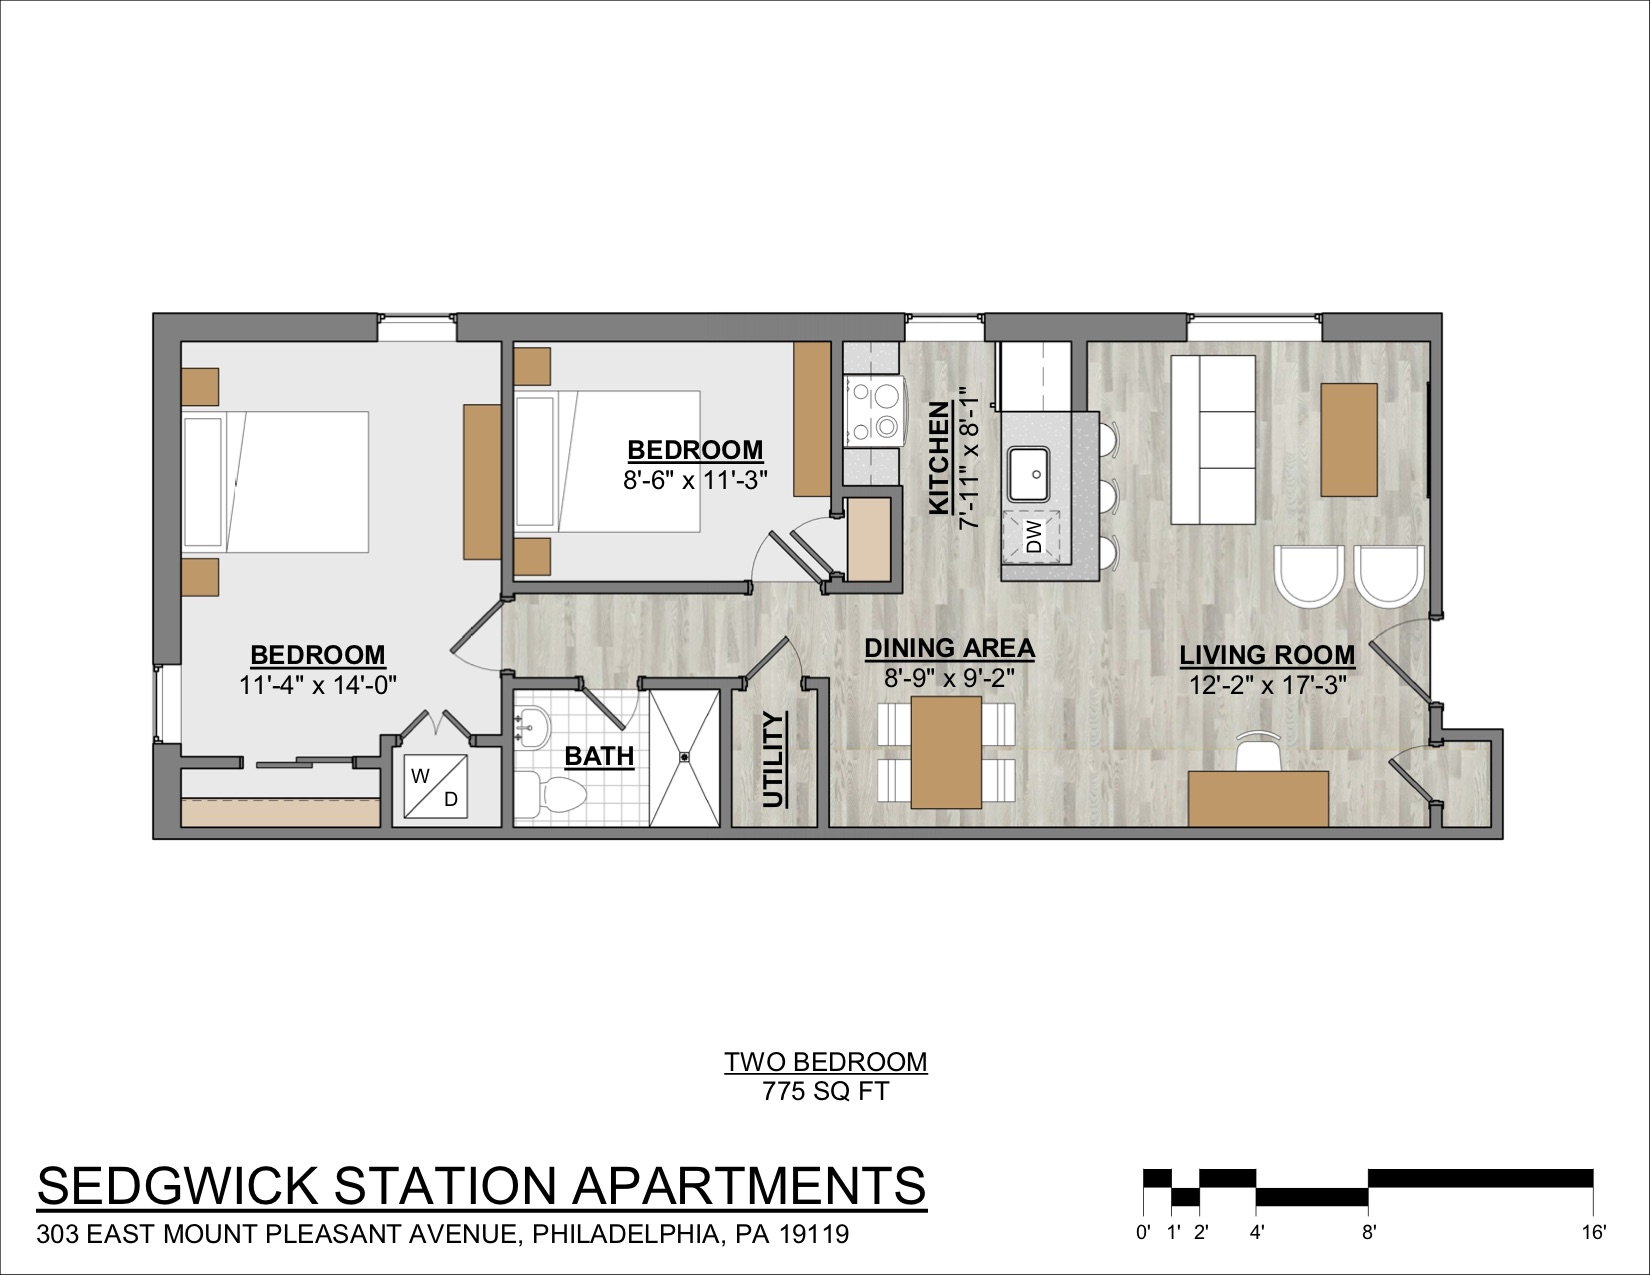 Floor plan of a 2-bedroom Mt. Airy apartment rental at Sedgwick Station